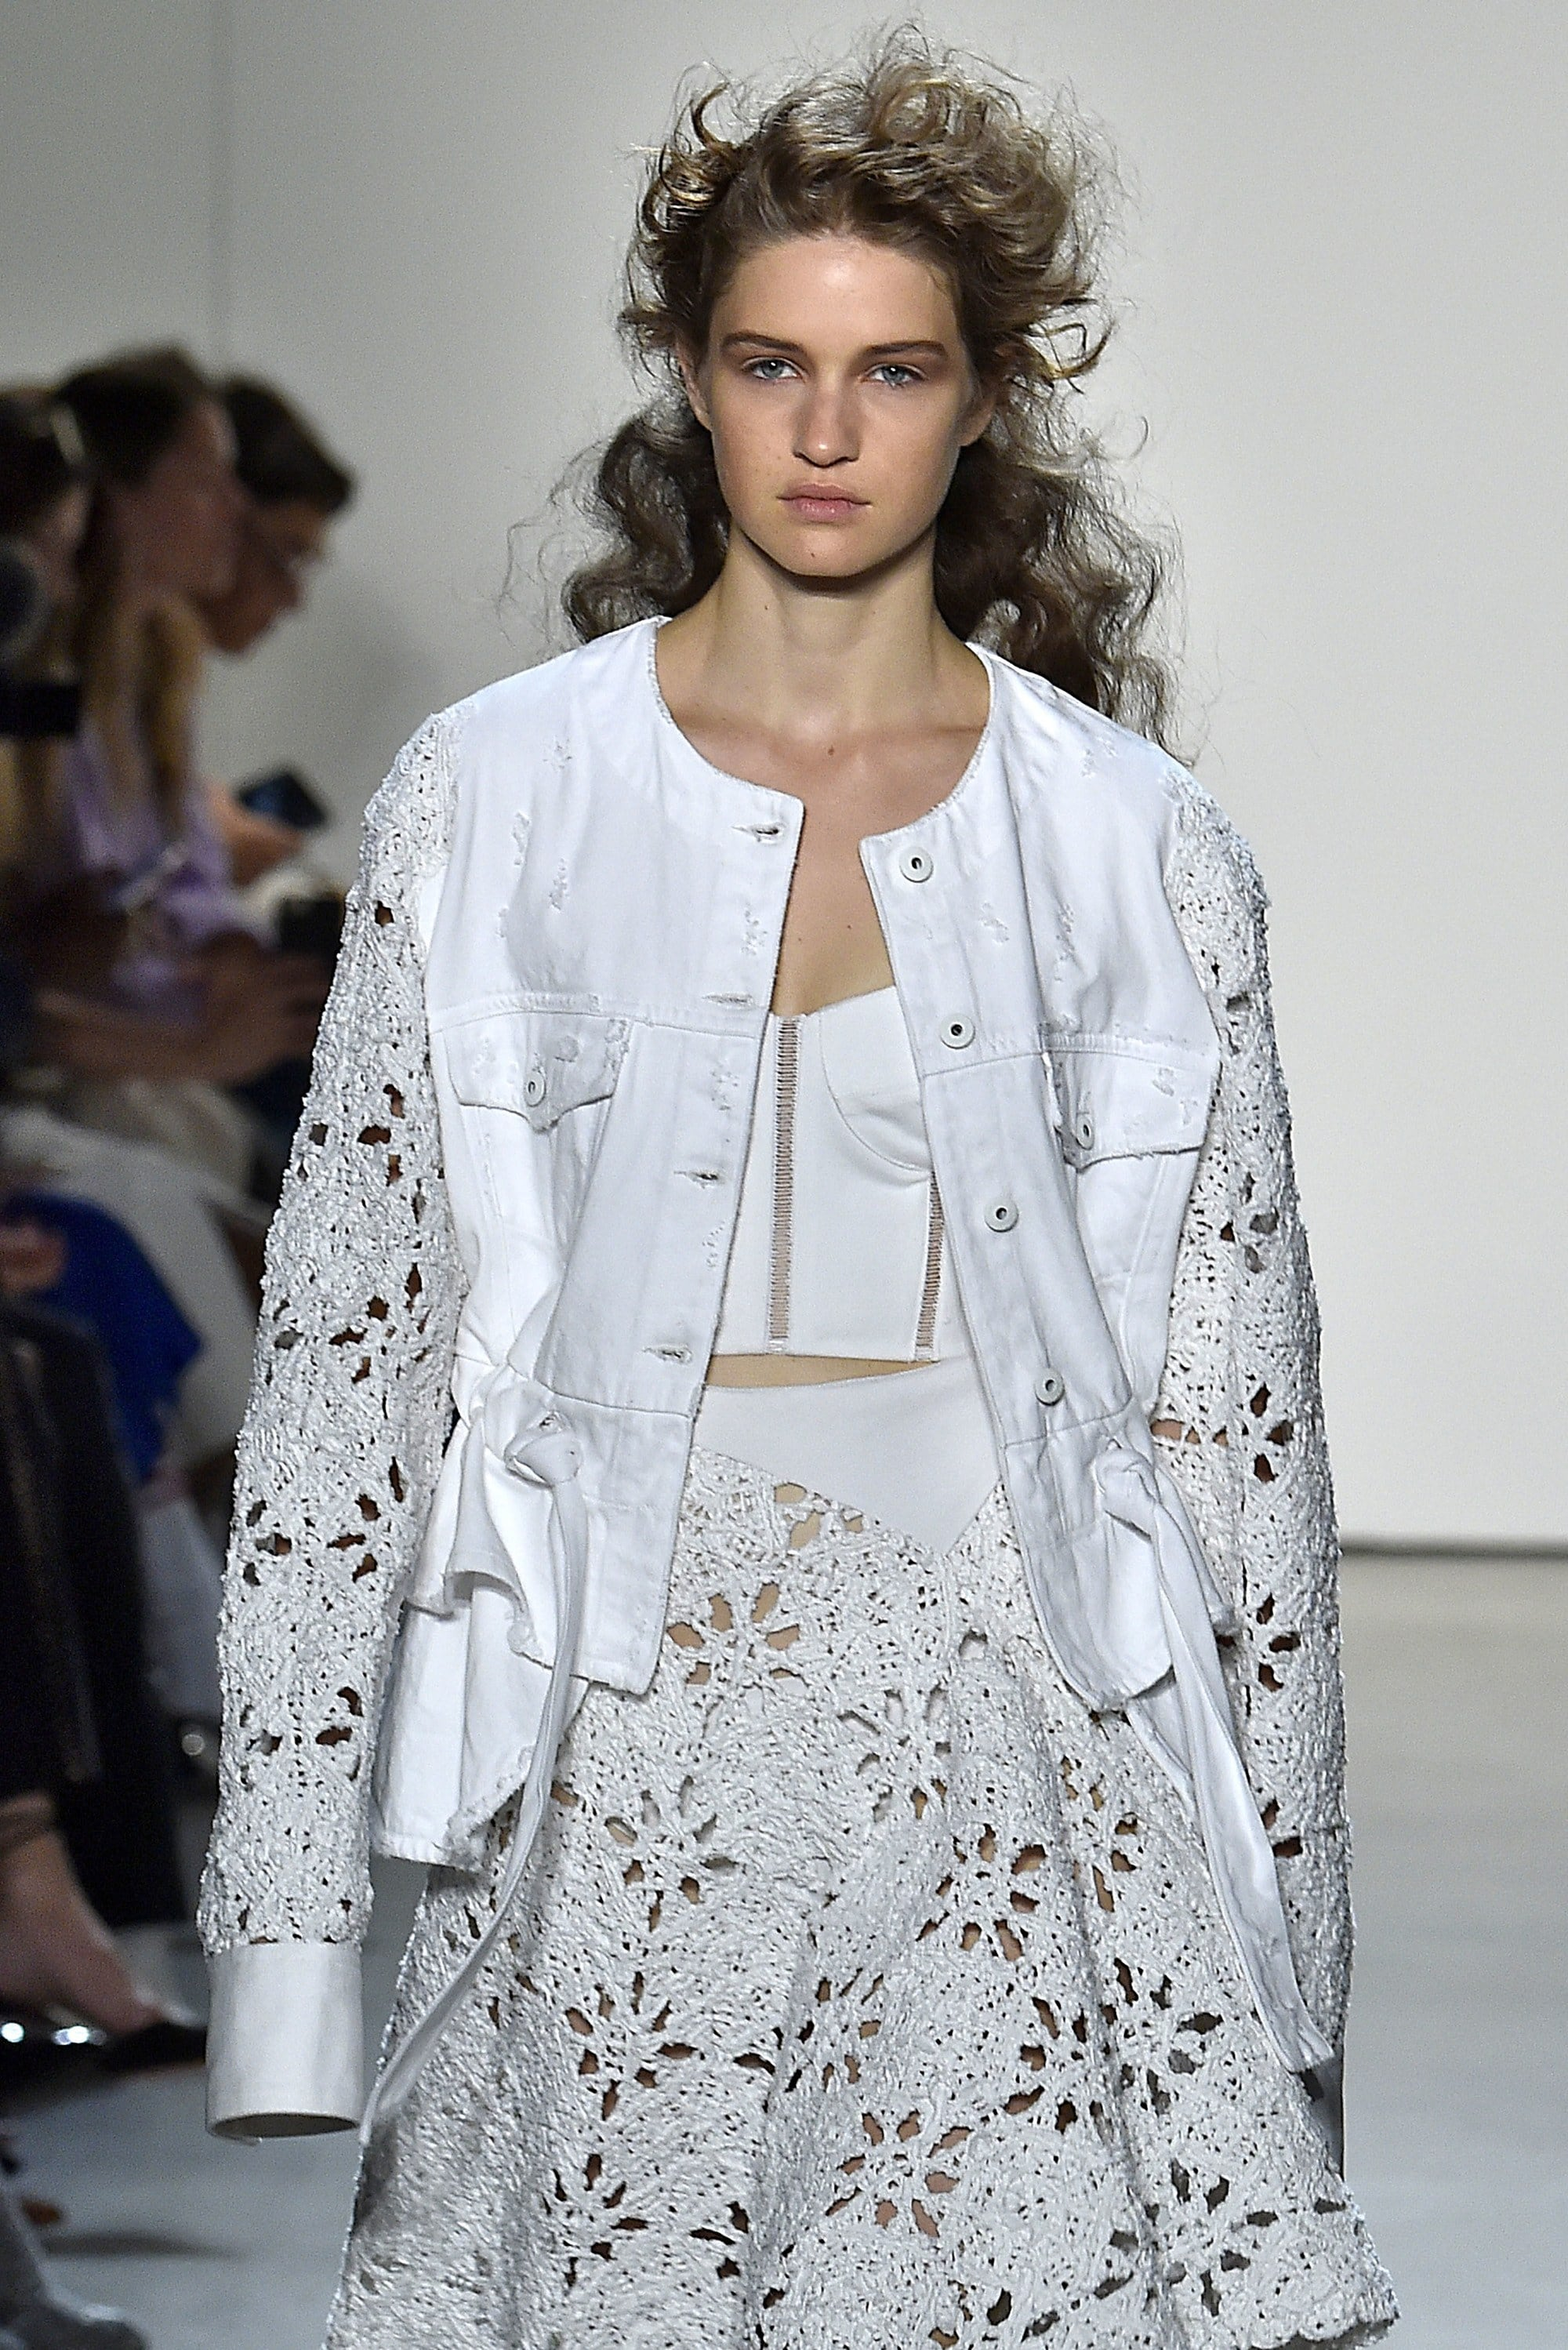 brunette model at the jonathan simkhai nyfw ss18 show with untamed curly hair